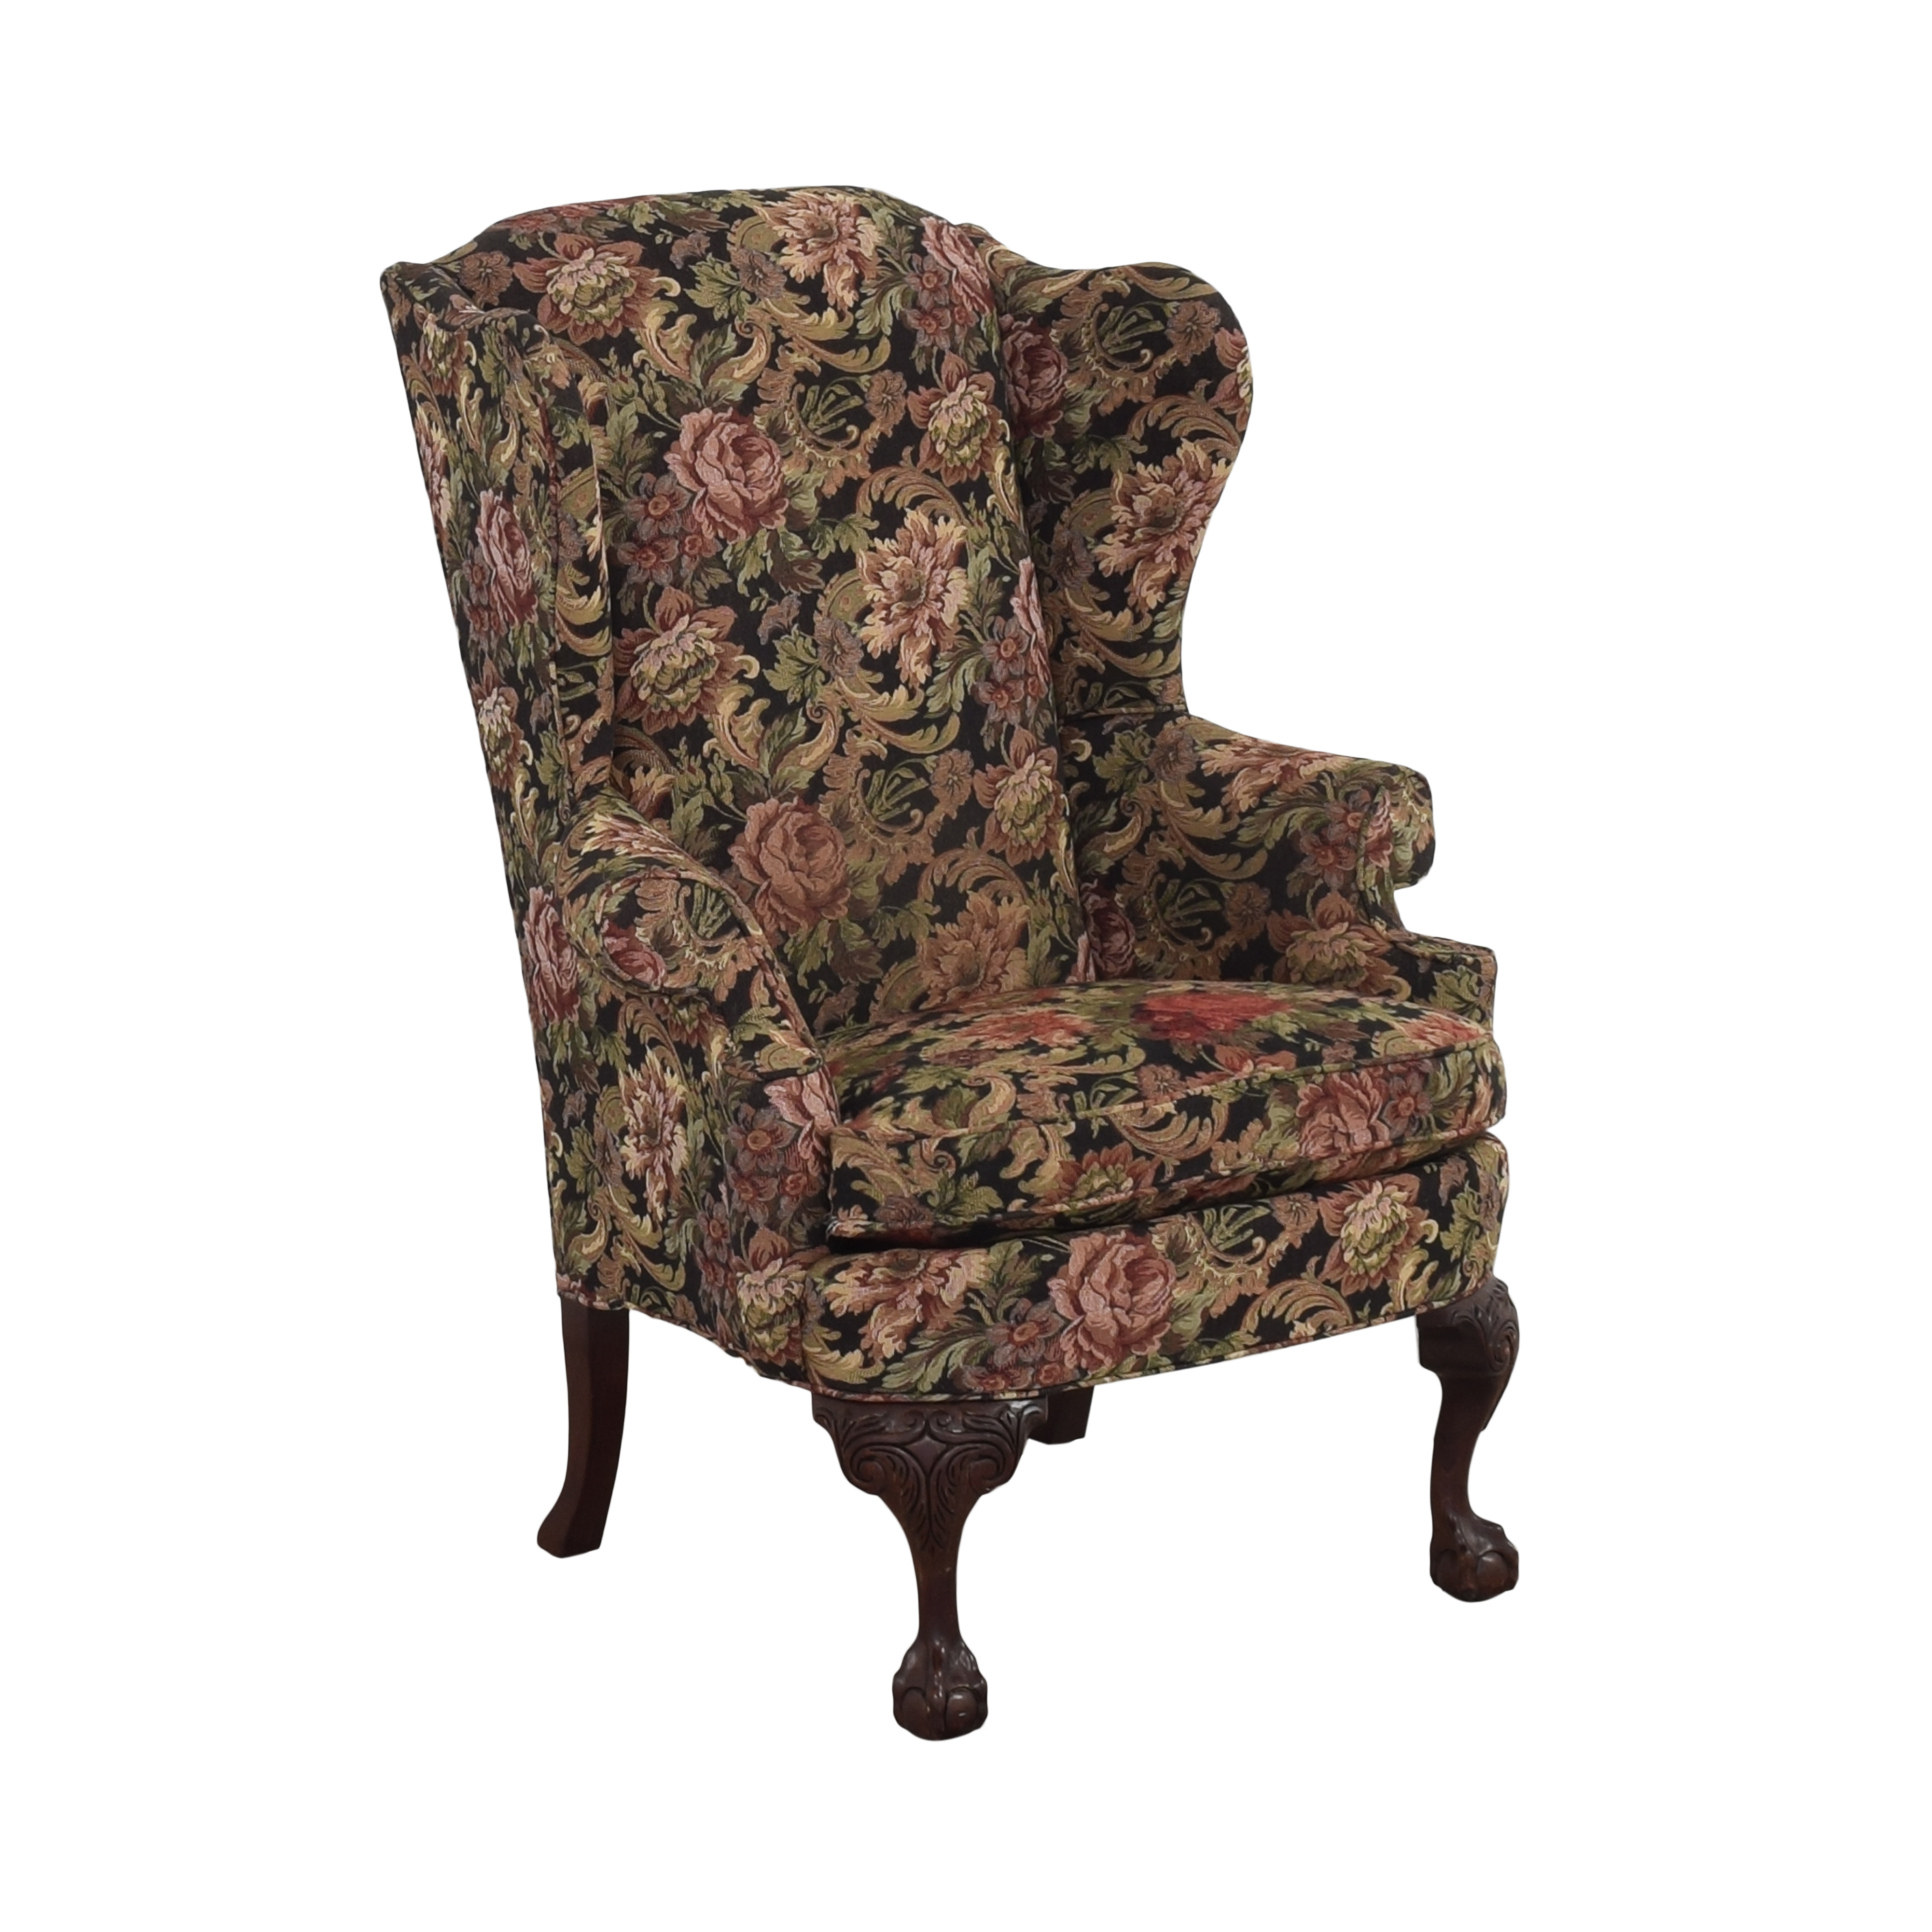 Thomasville Queen Anne Wing Back Chair / Chairs